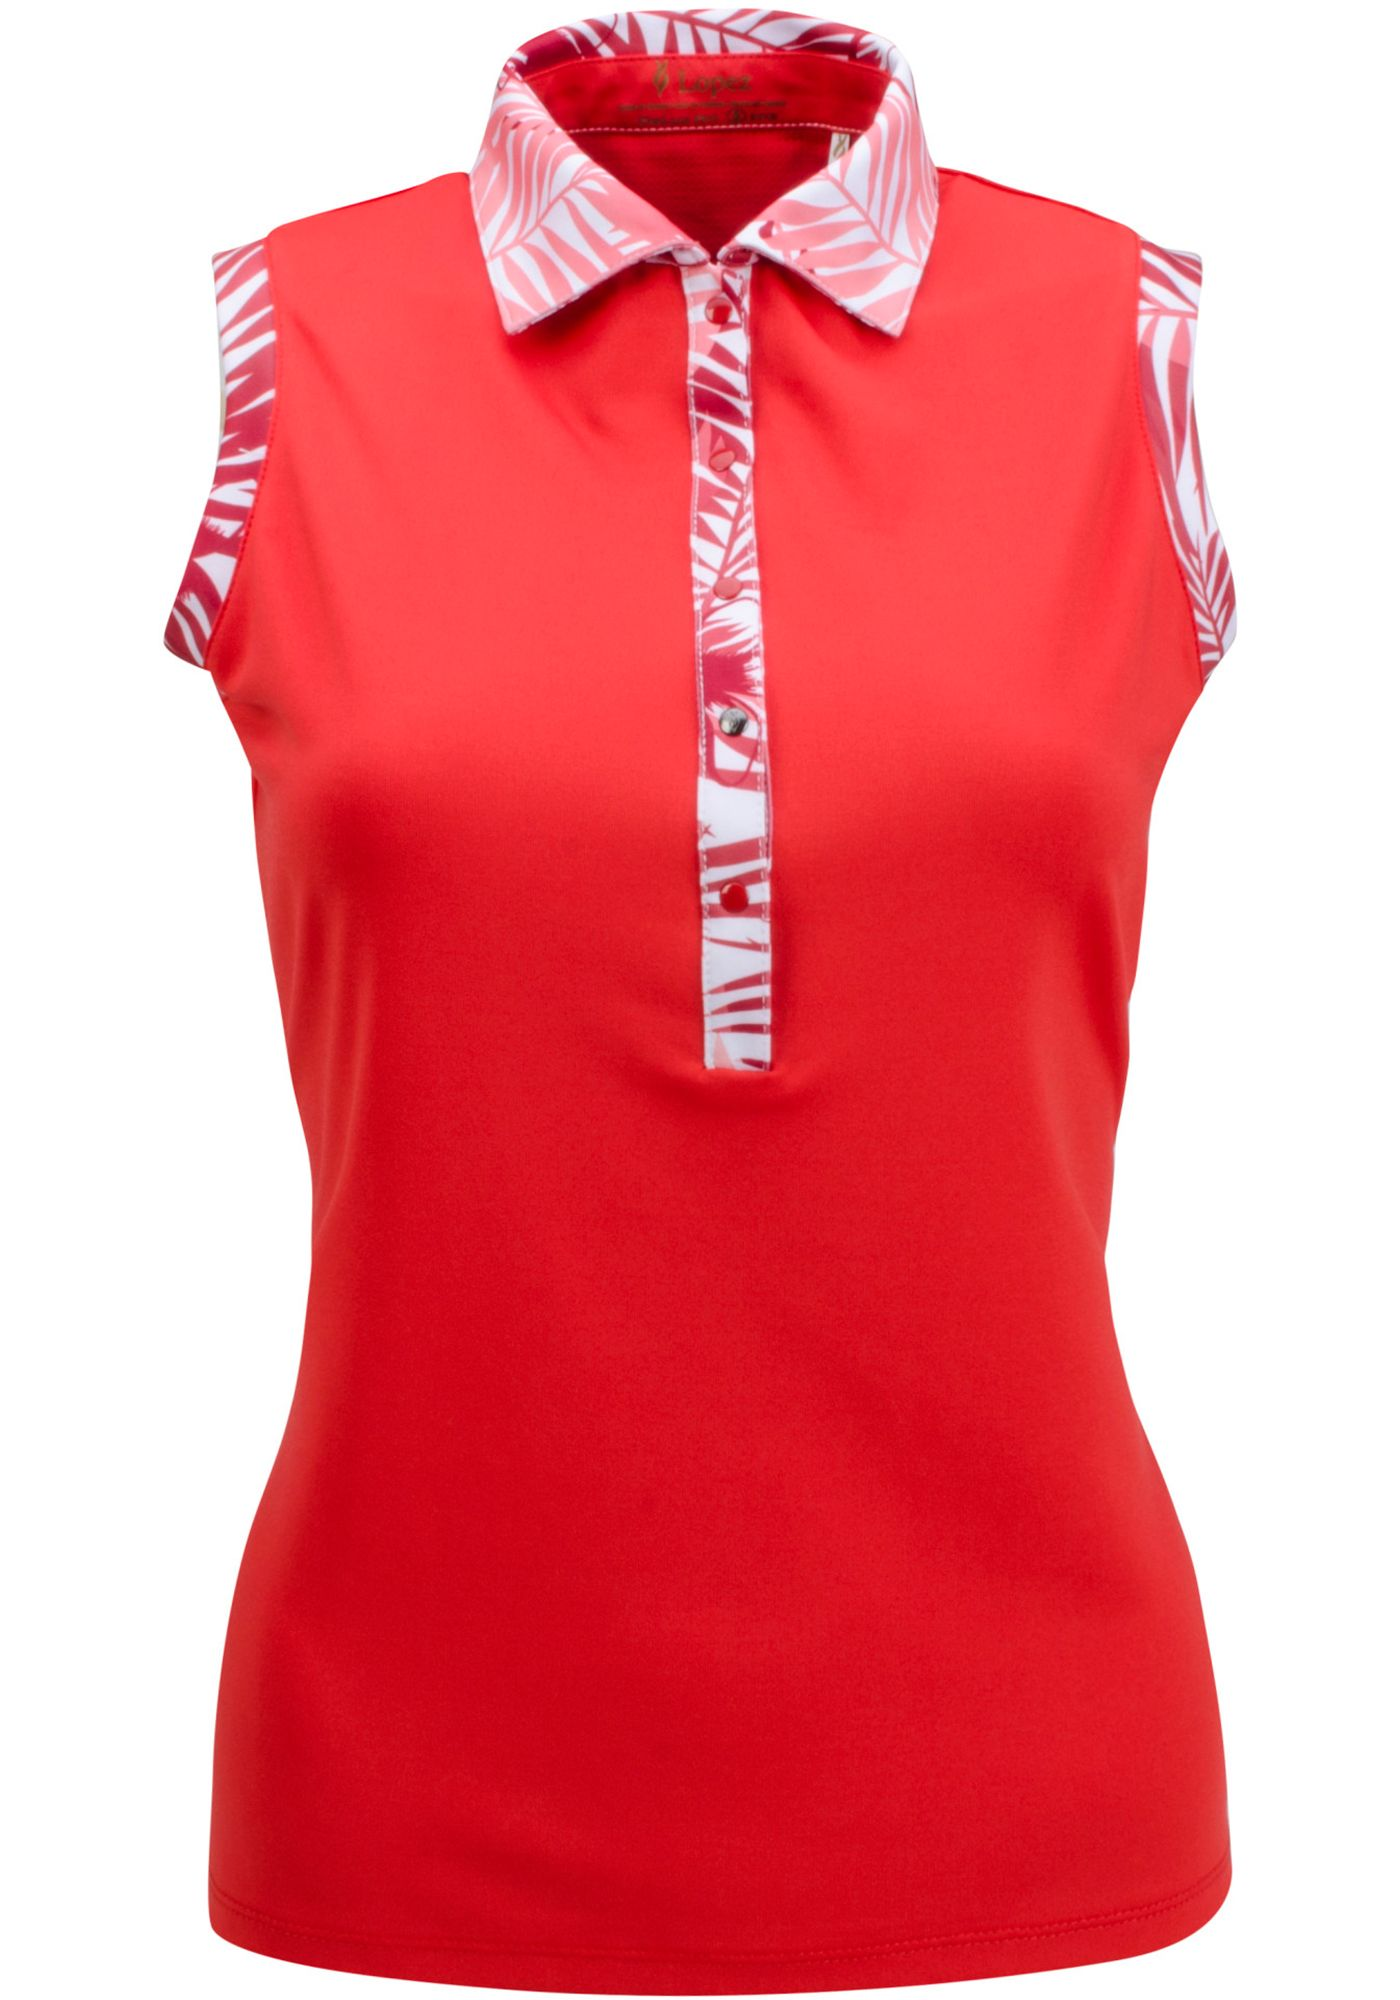 Nancy Lopez Women's Escapade Sleeveless Golf Polo - Extended Sizes